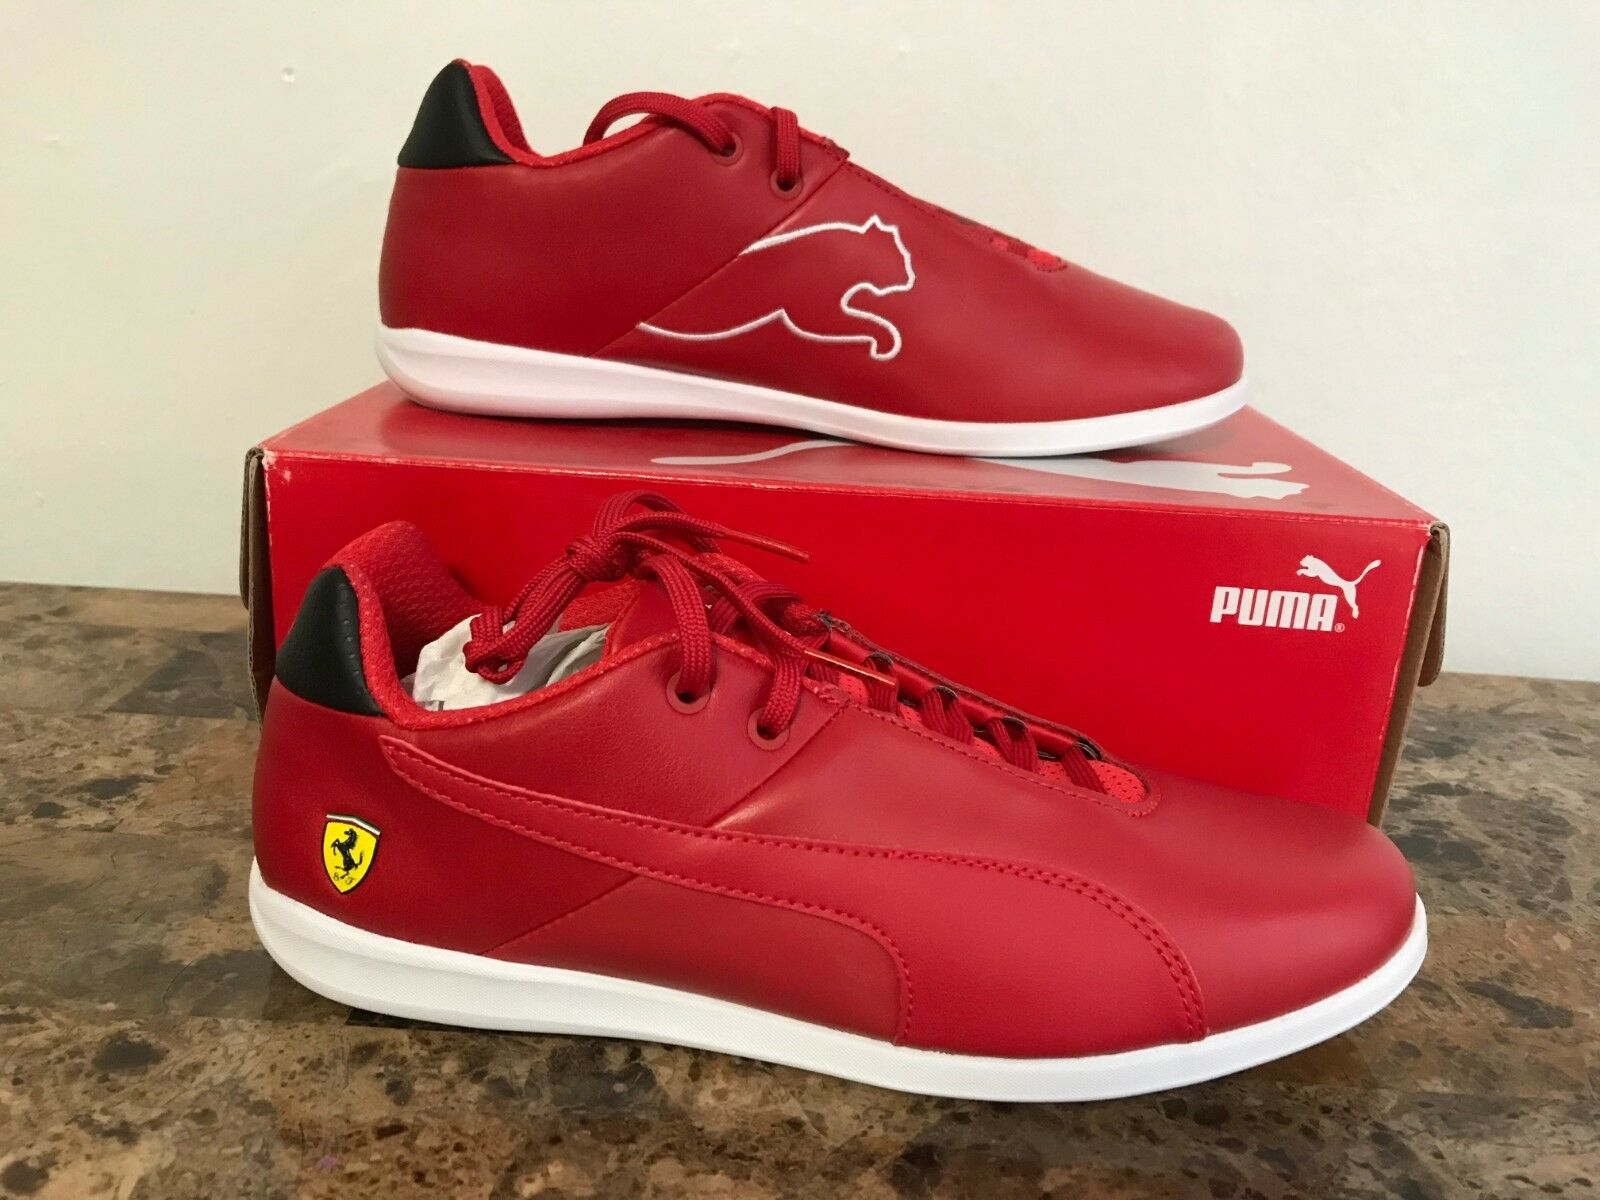 Puma SF Future Cat Casual red Corsa Black Men's Casual Sneakers 7.5